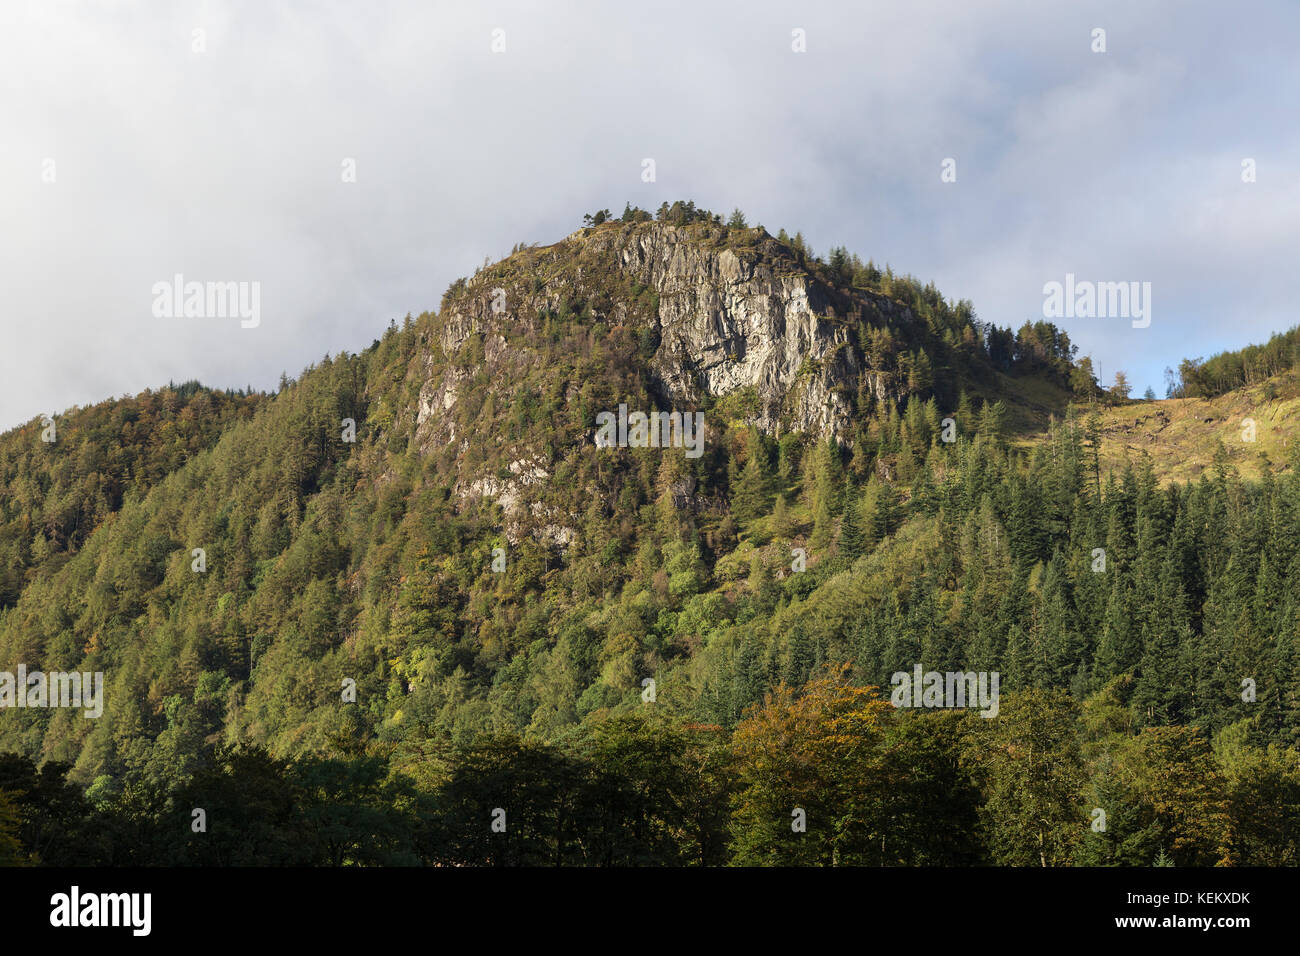 Lake District, Cumbria - Raven Crag towers above Thirlmere - Stock Image